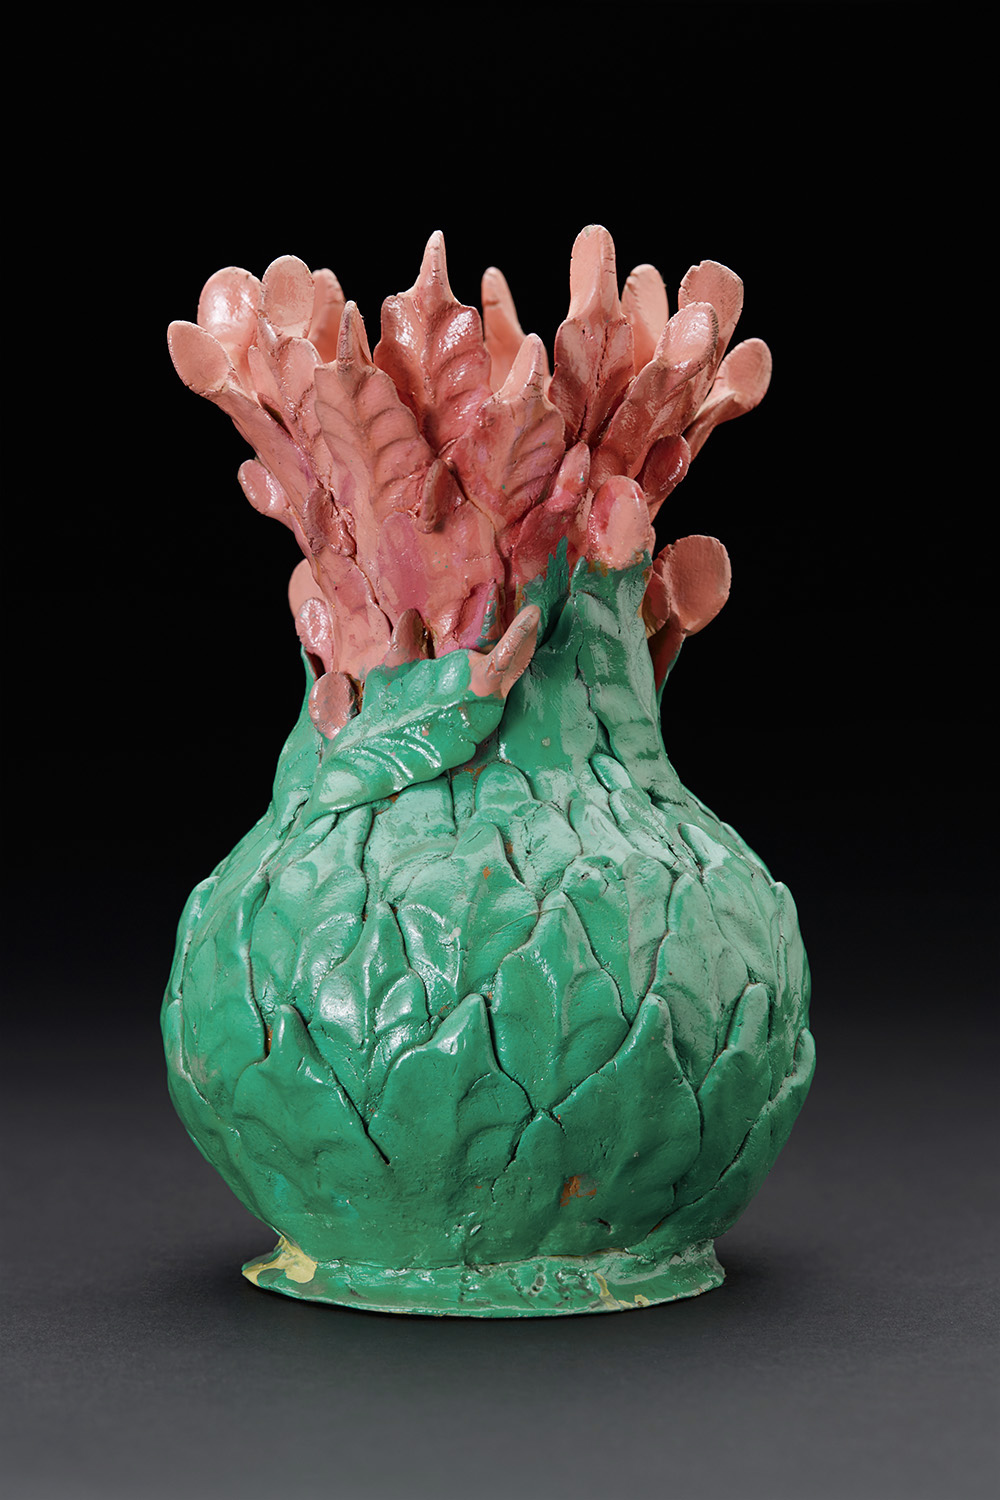 Eugene Von Bruenchenhein    Untitled  , 1960-1980 Hand dug clay and paint 7 x 4.5 x 4.5 inches 17.8 x 11.4 x 11.4 cm EV 47